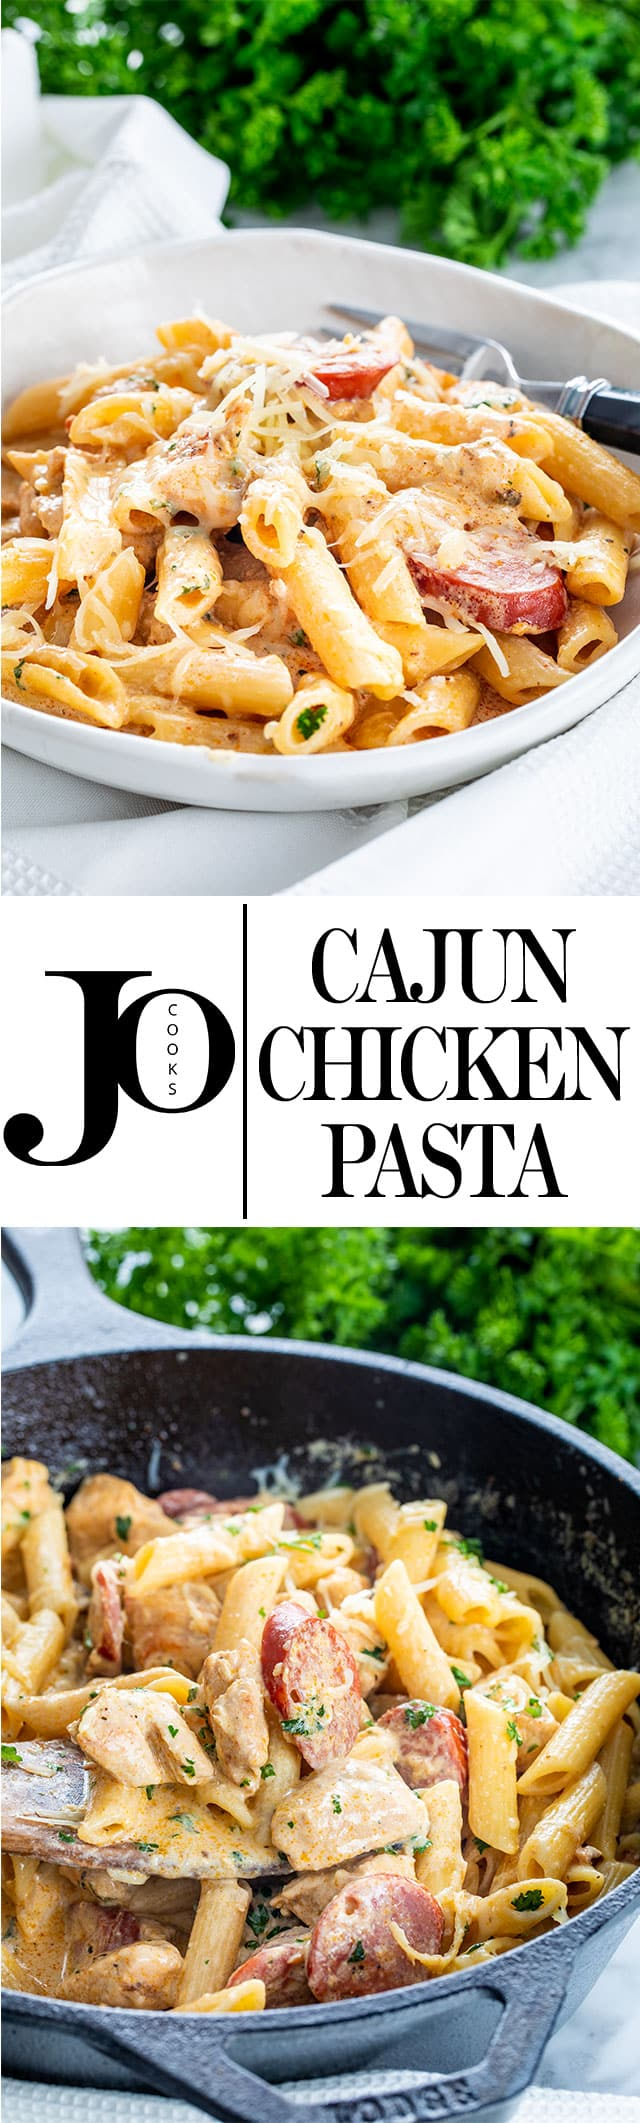 This Cajun Chicken Pasta is creamy, cheesy, loaded with flavor and on the table in 30 minutes! An easy weeknight dinner your whole family will love! #cajunchickenpasta #cajunchicken